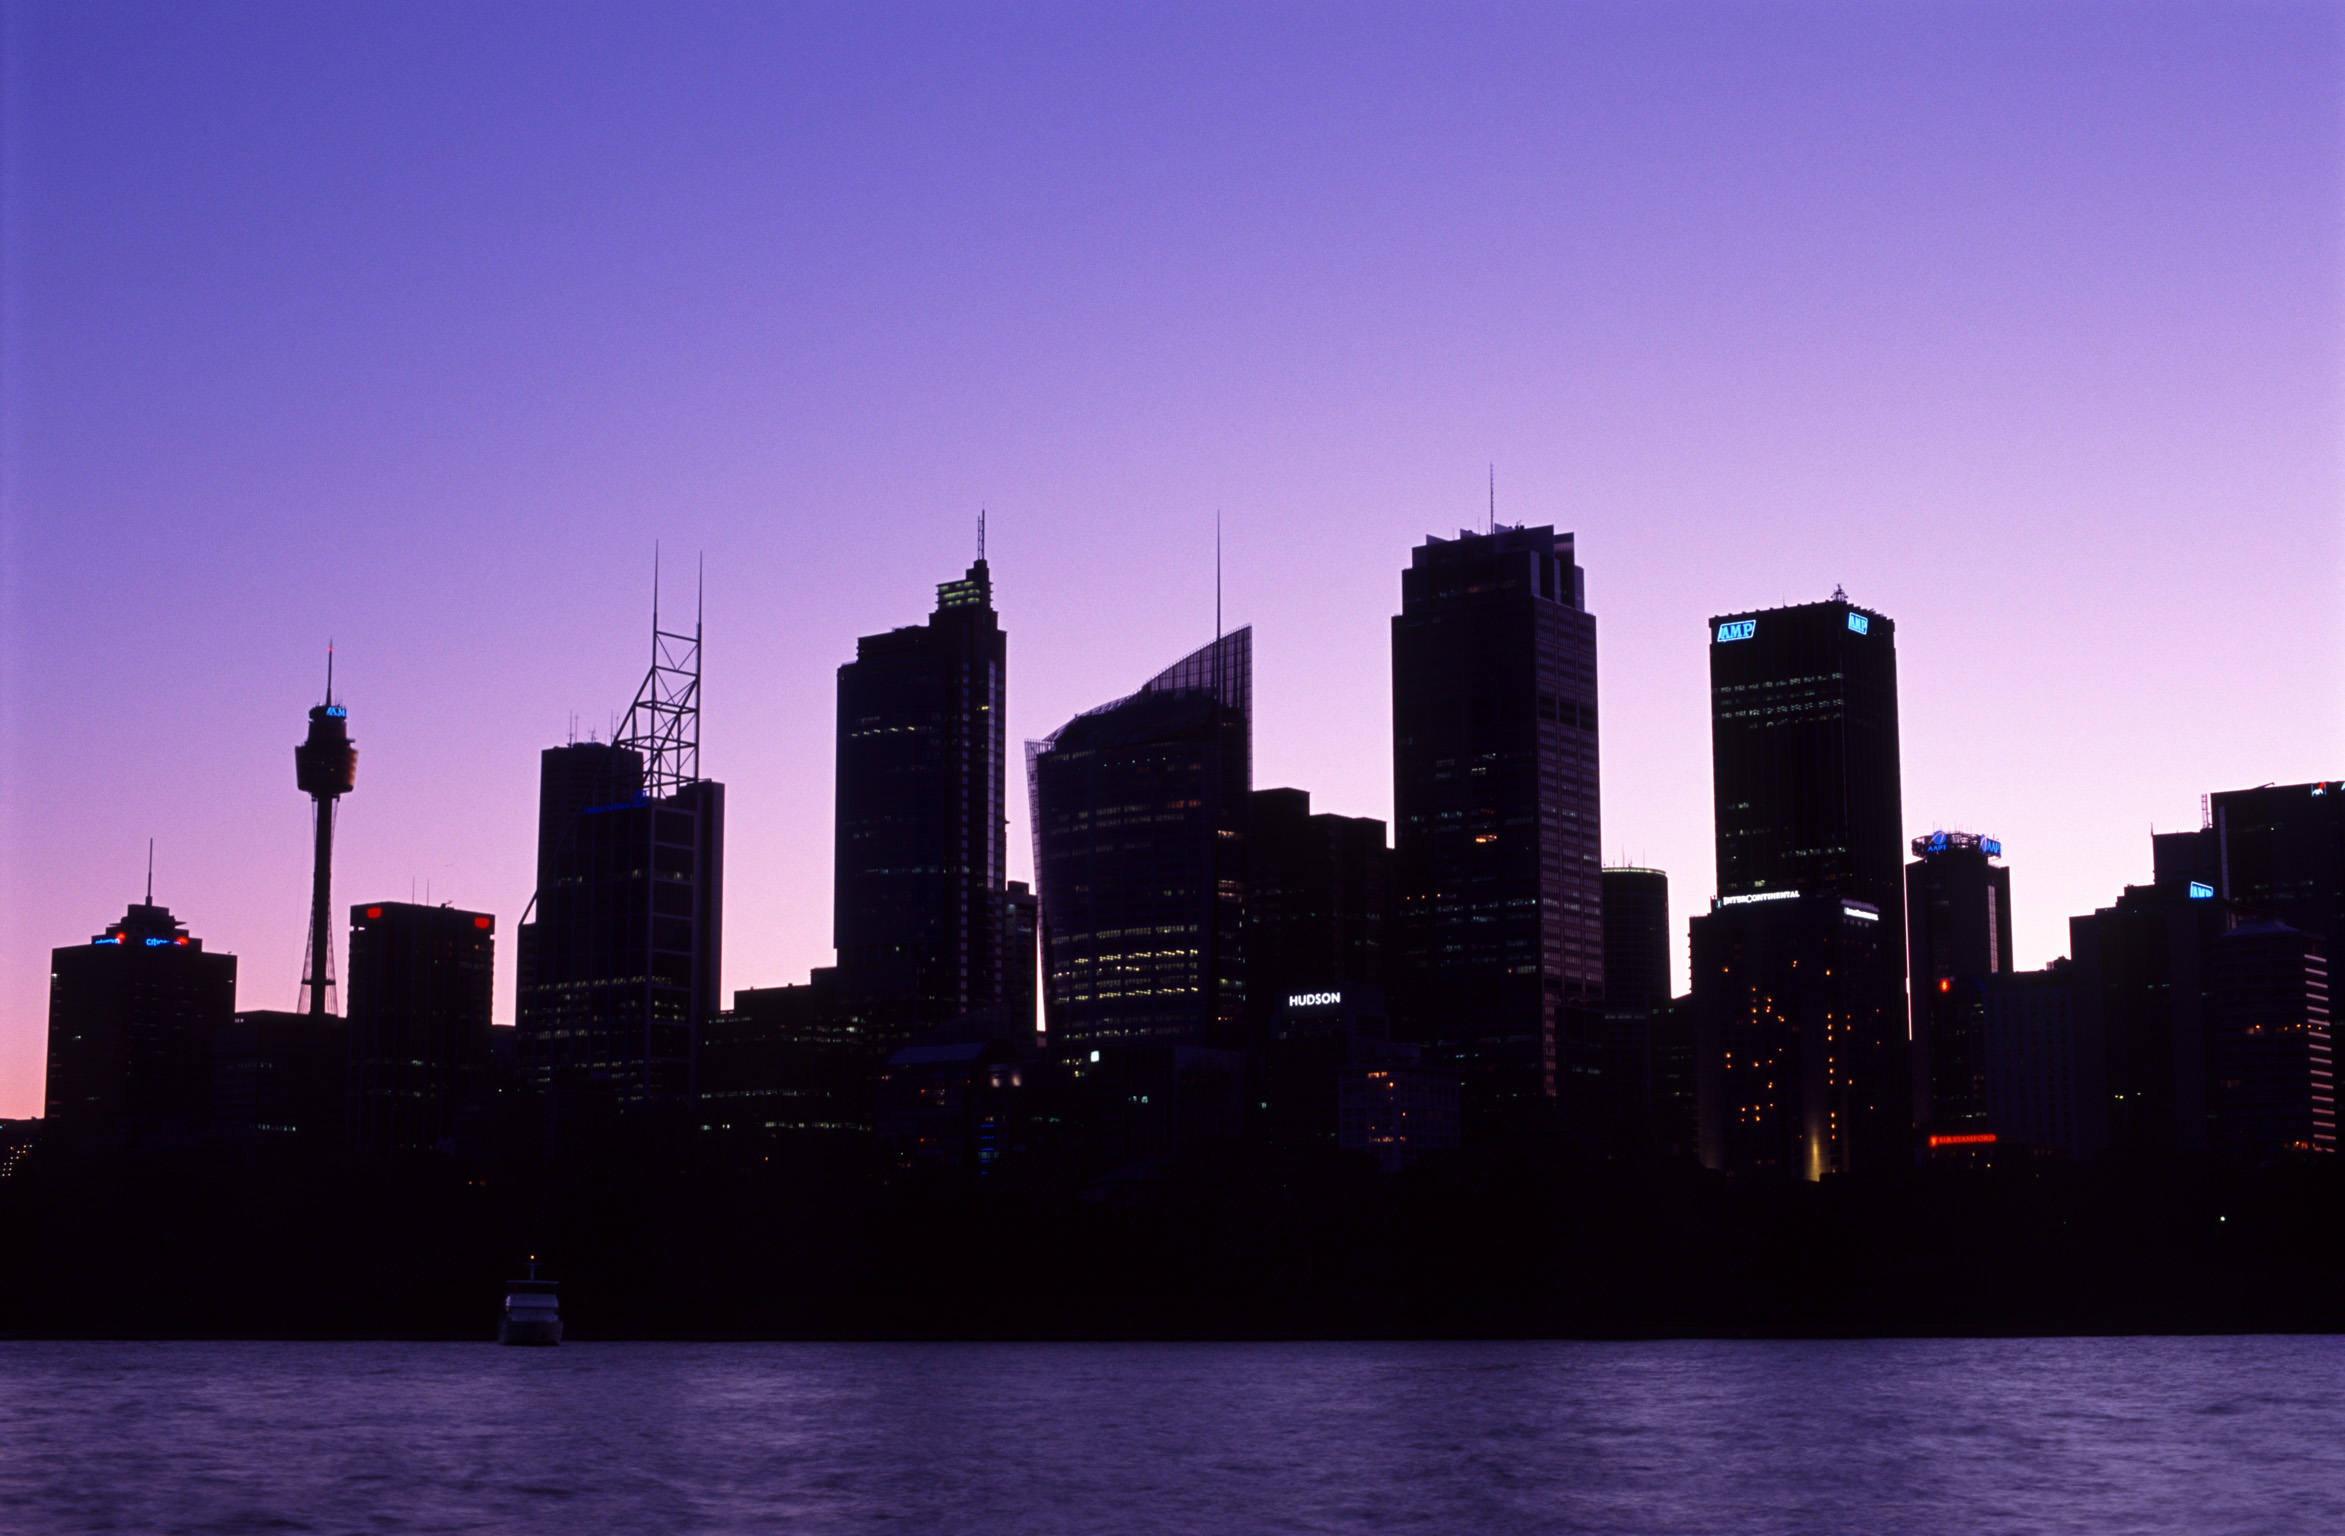 Sunset over the Sydney, Australia CBD with the skyscrapers silhouetted against a colorful purple sky at twilight